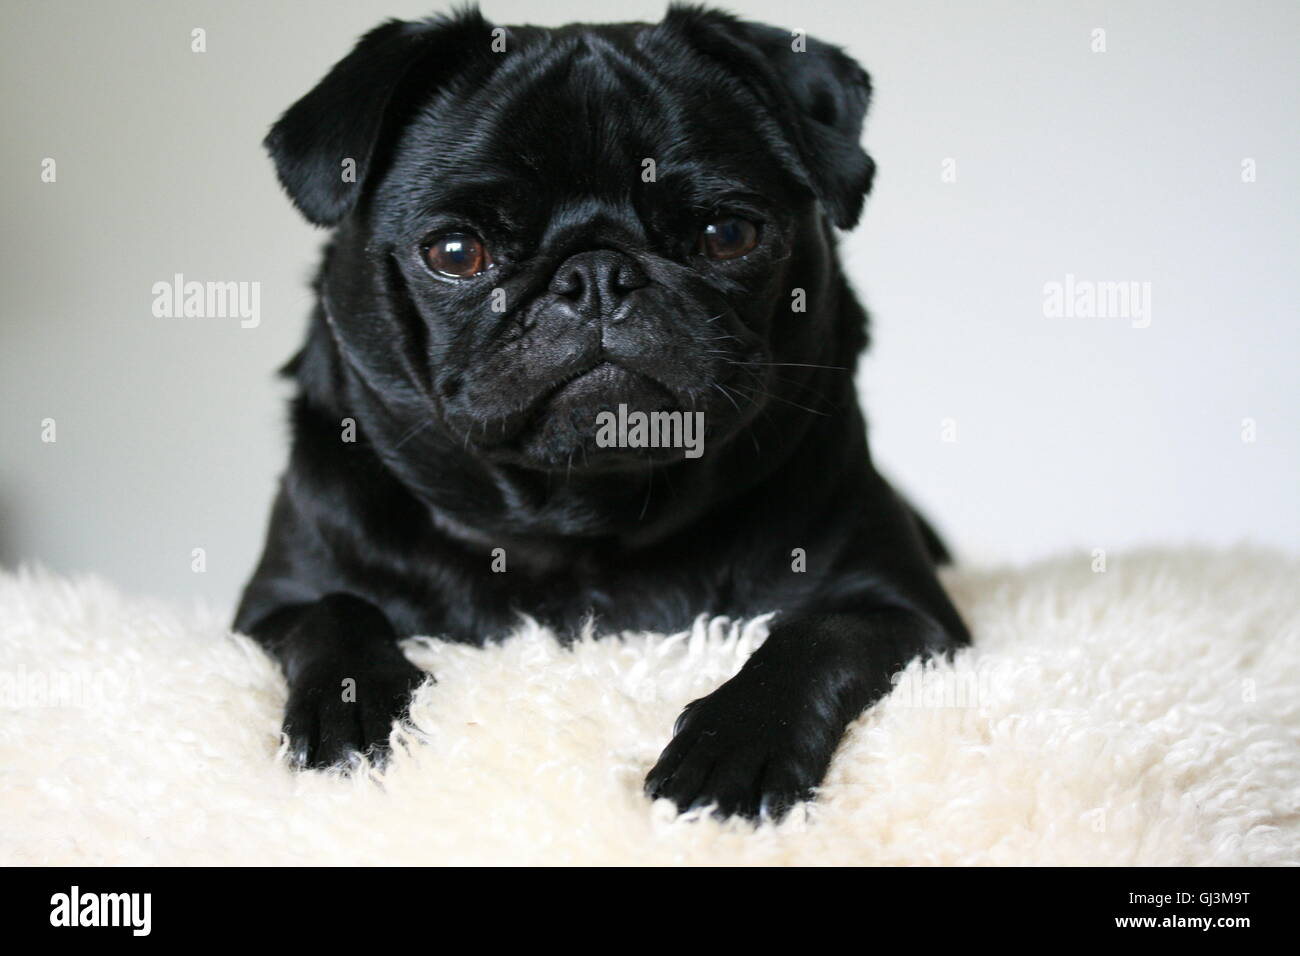 cute 2 year old black pug male dog - Stock Image